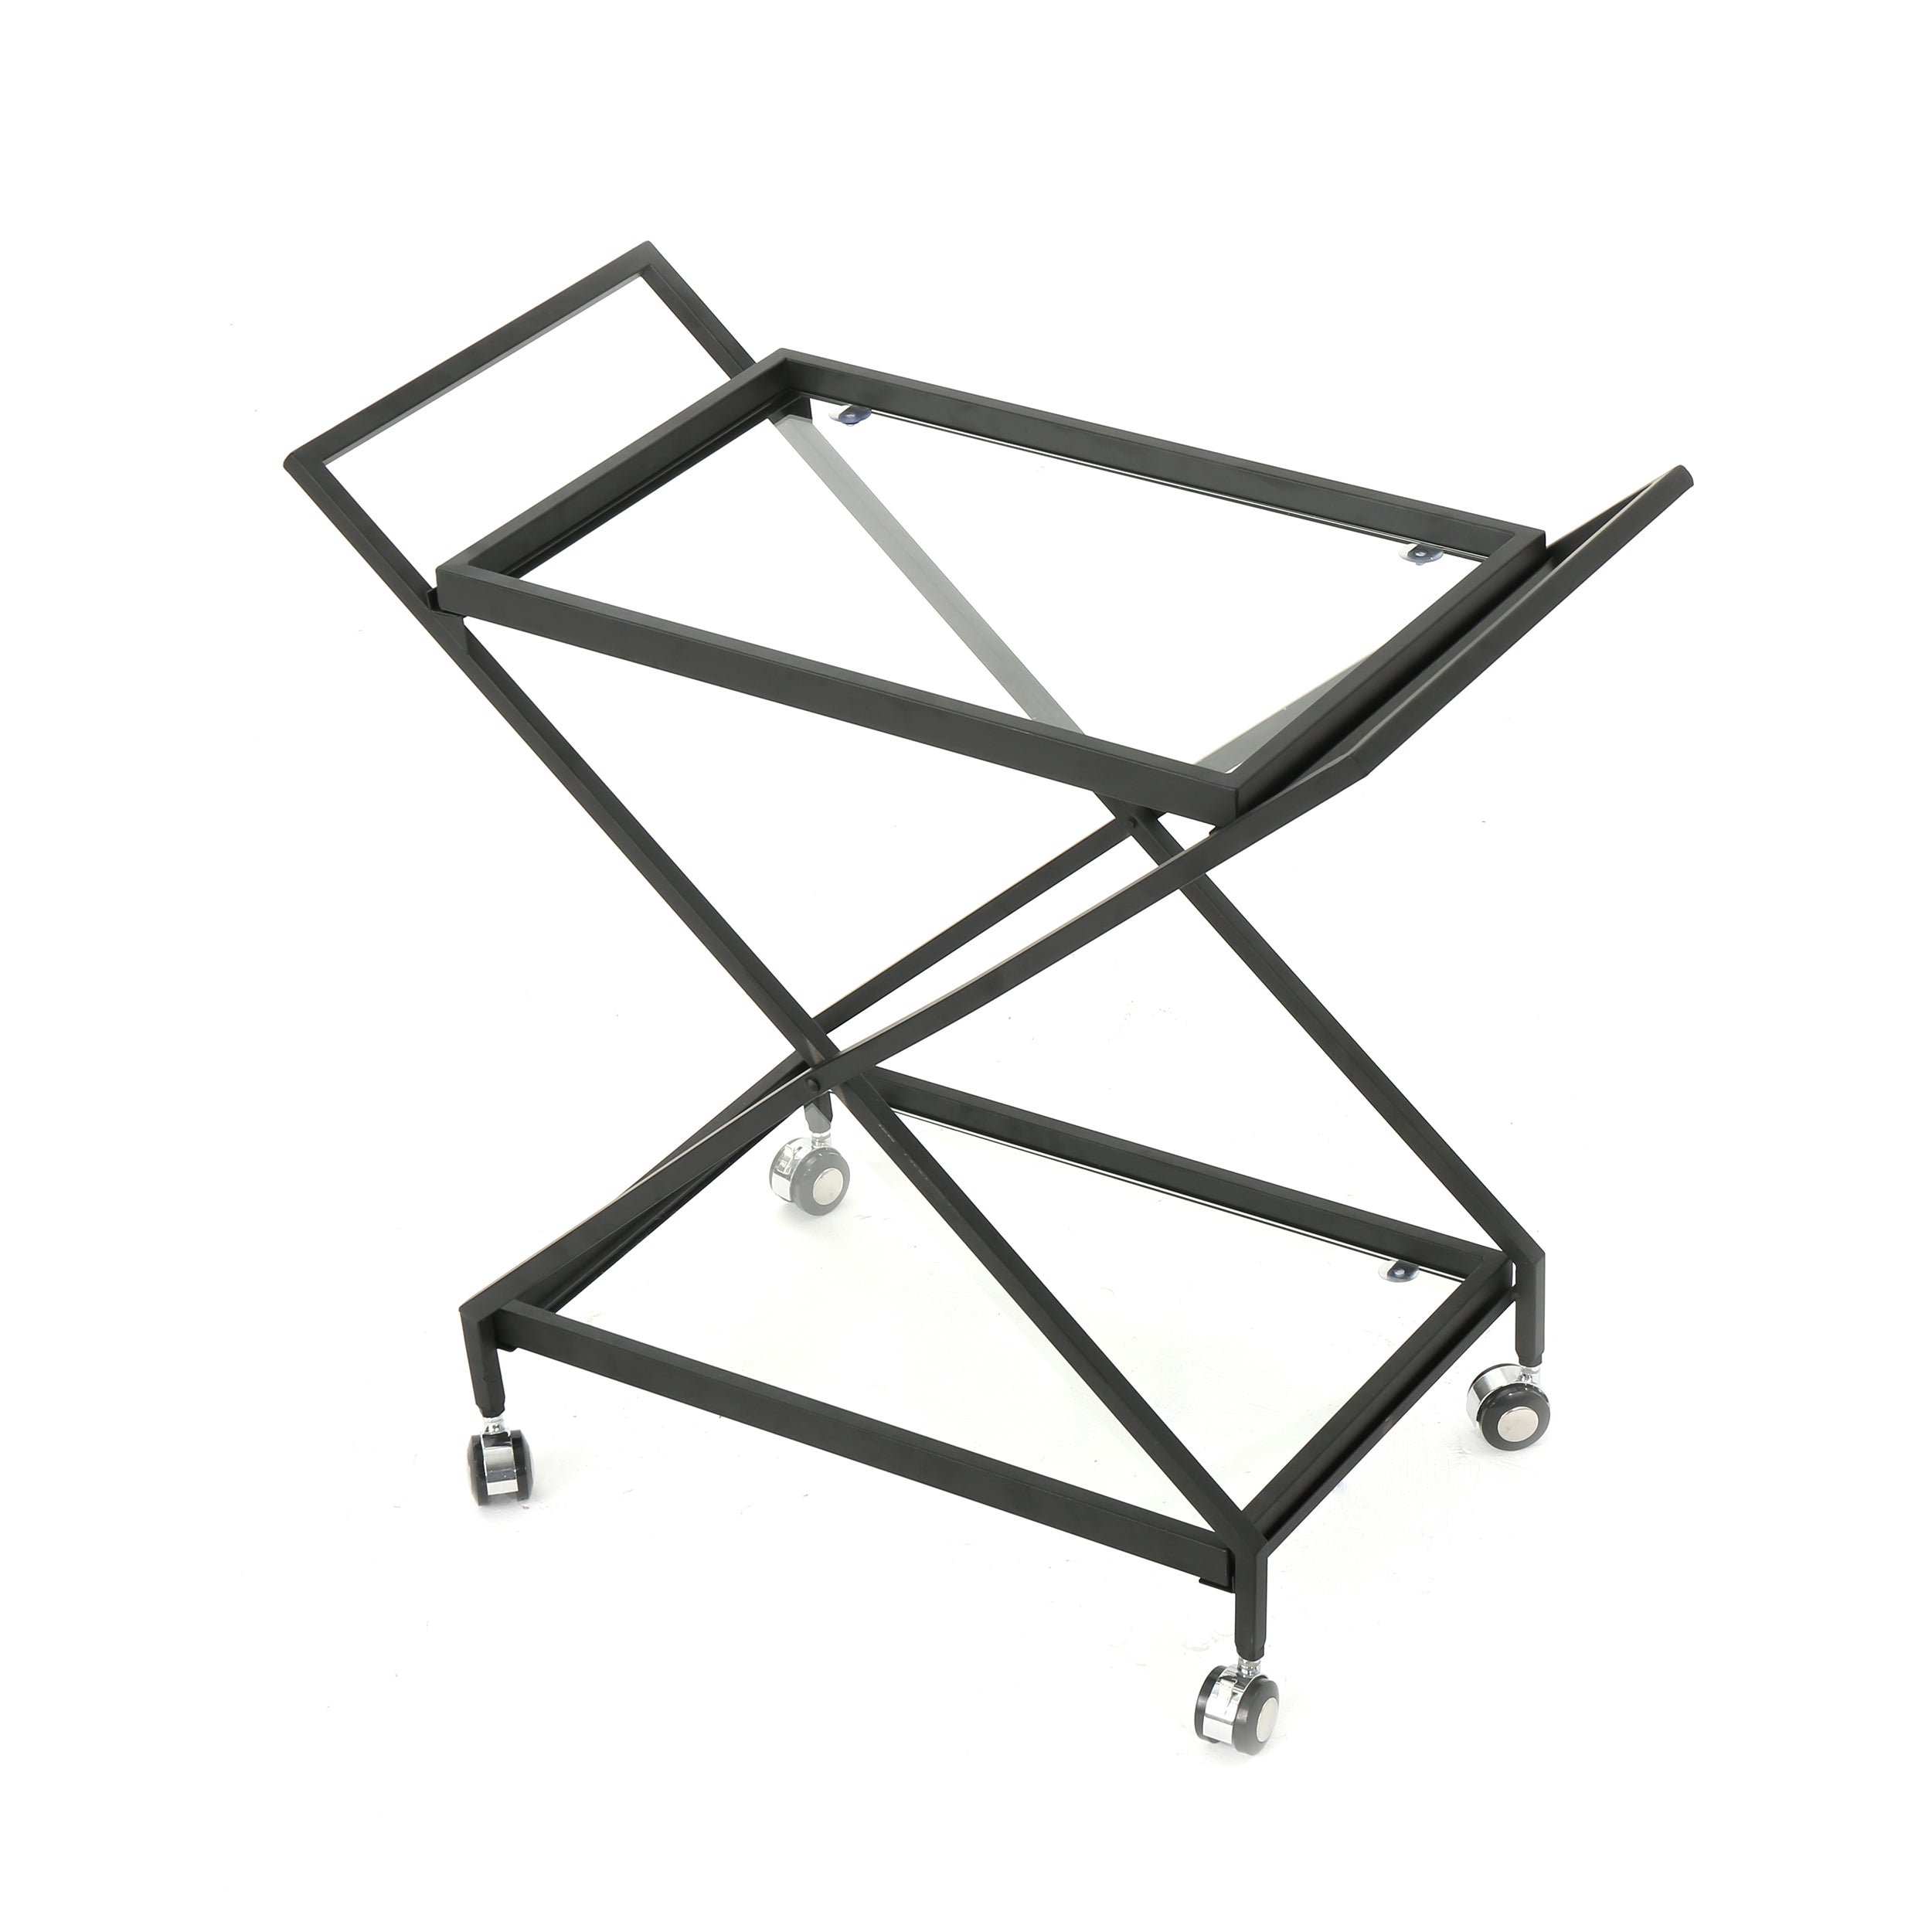 Annika Outdoor Black Powder Coated Iron Bar Cart with Tempered Glass Shelves Default Title